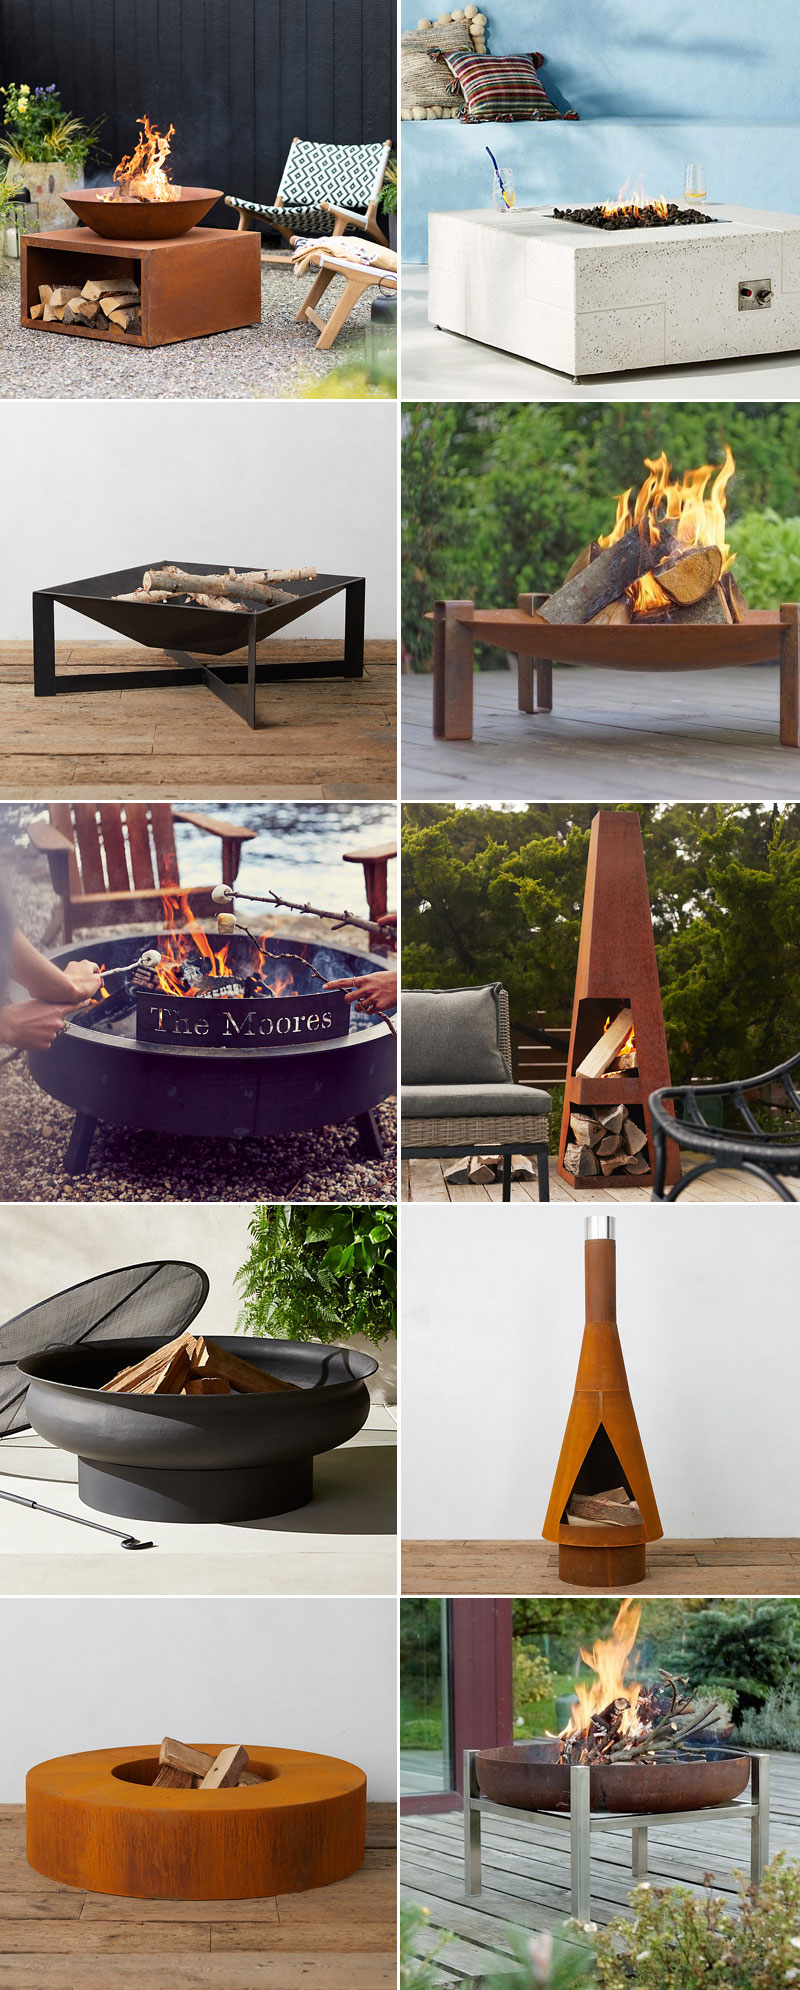 Image of: 15 Modern Fire Pits To Complete Your Backyard Oasis Jojotastic